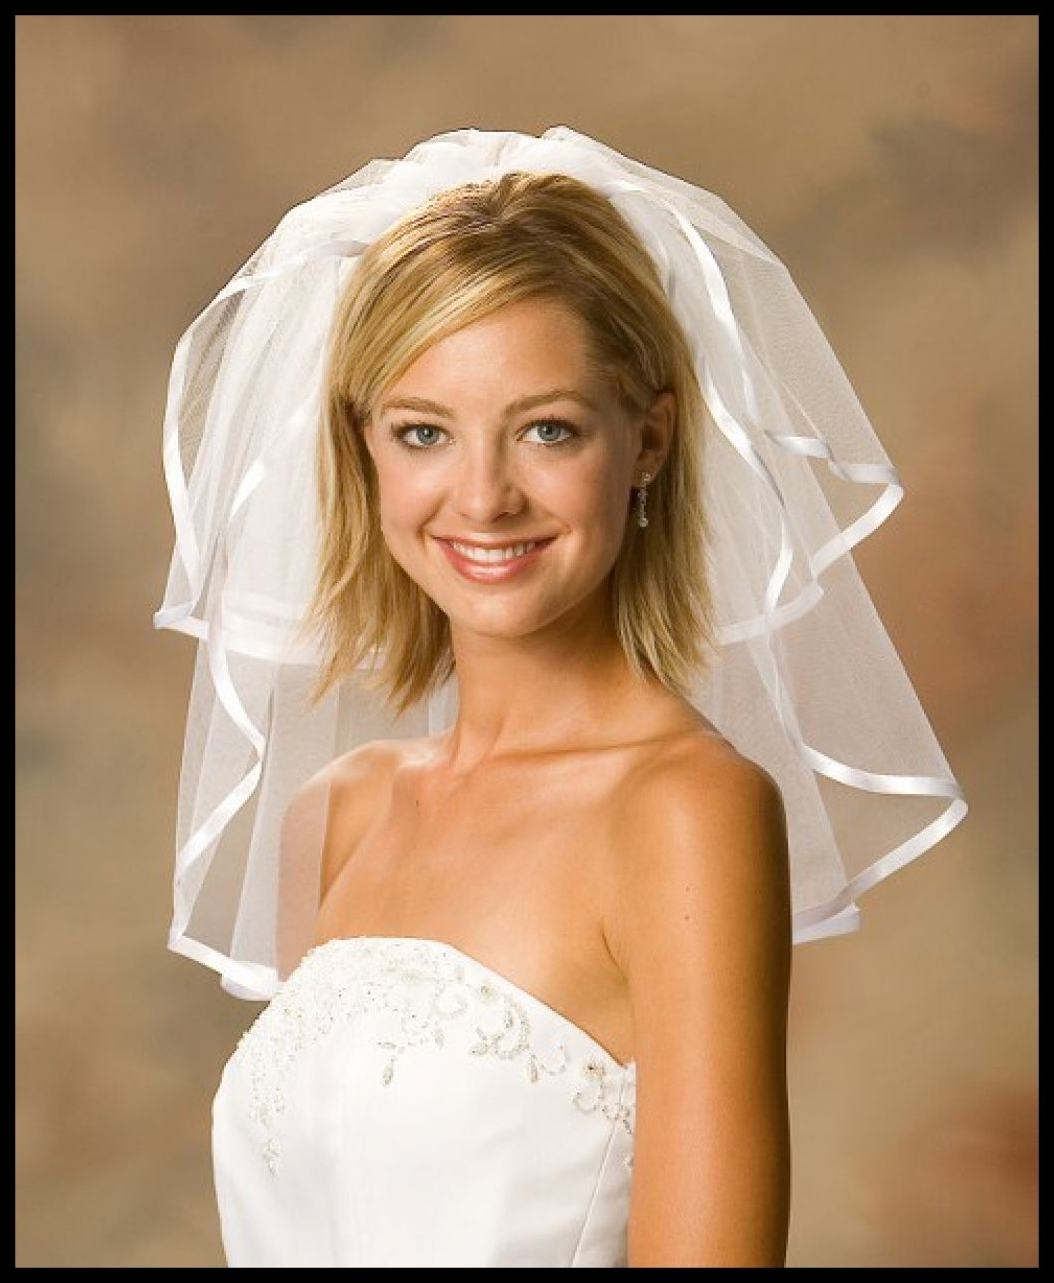 Unbelievable Hairstyls For Short Hair With Vil Inspirational Wedding Pertaining To Recent Wedding Hairstyles For Short Hair With Veil (View 11 of 15)